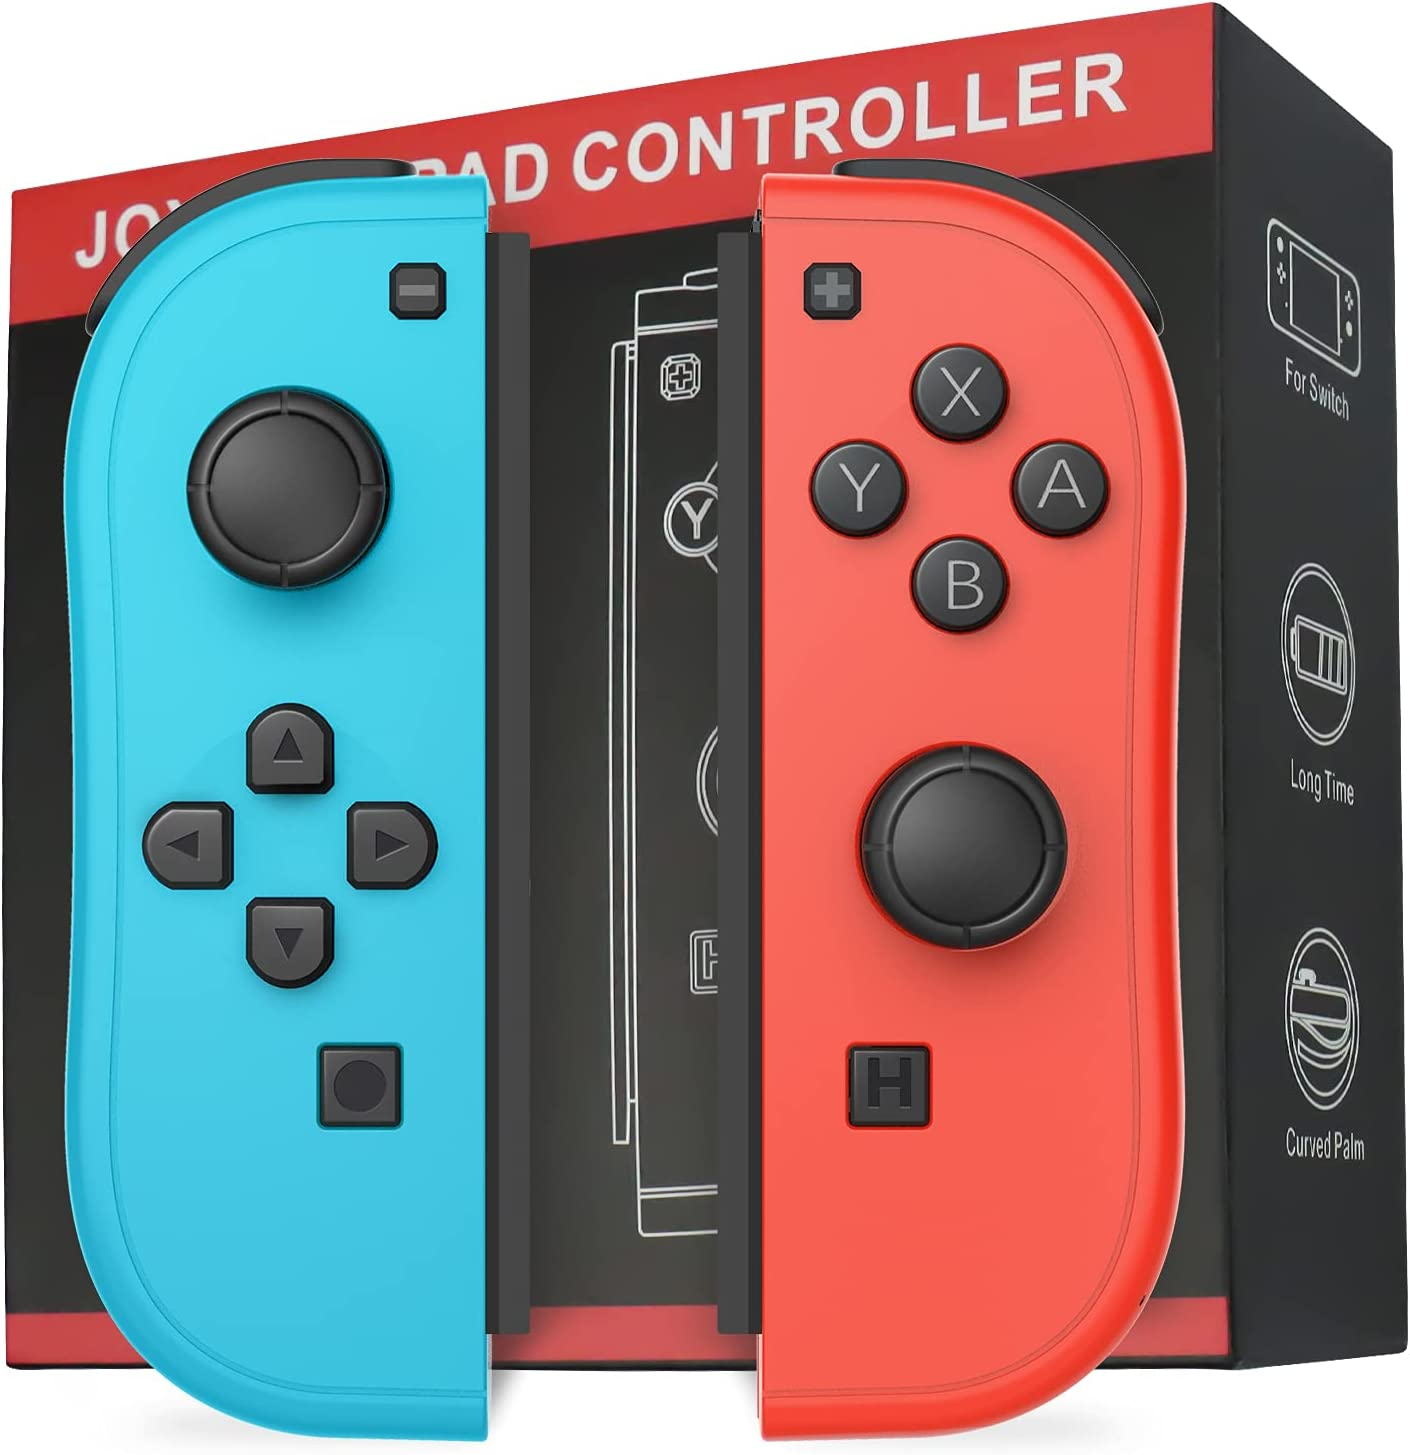 D.Gruoiza Joycon Switch Controllers Have Wake Up Feature, Enhanced Joy-con Remotes Apply to Switch with Grip (Blue and Red)